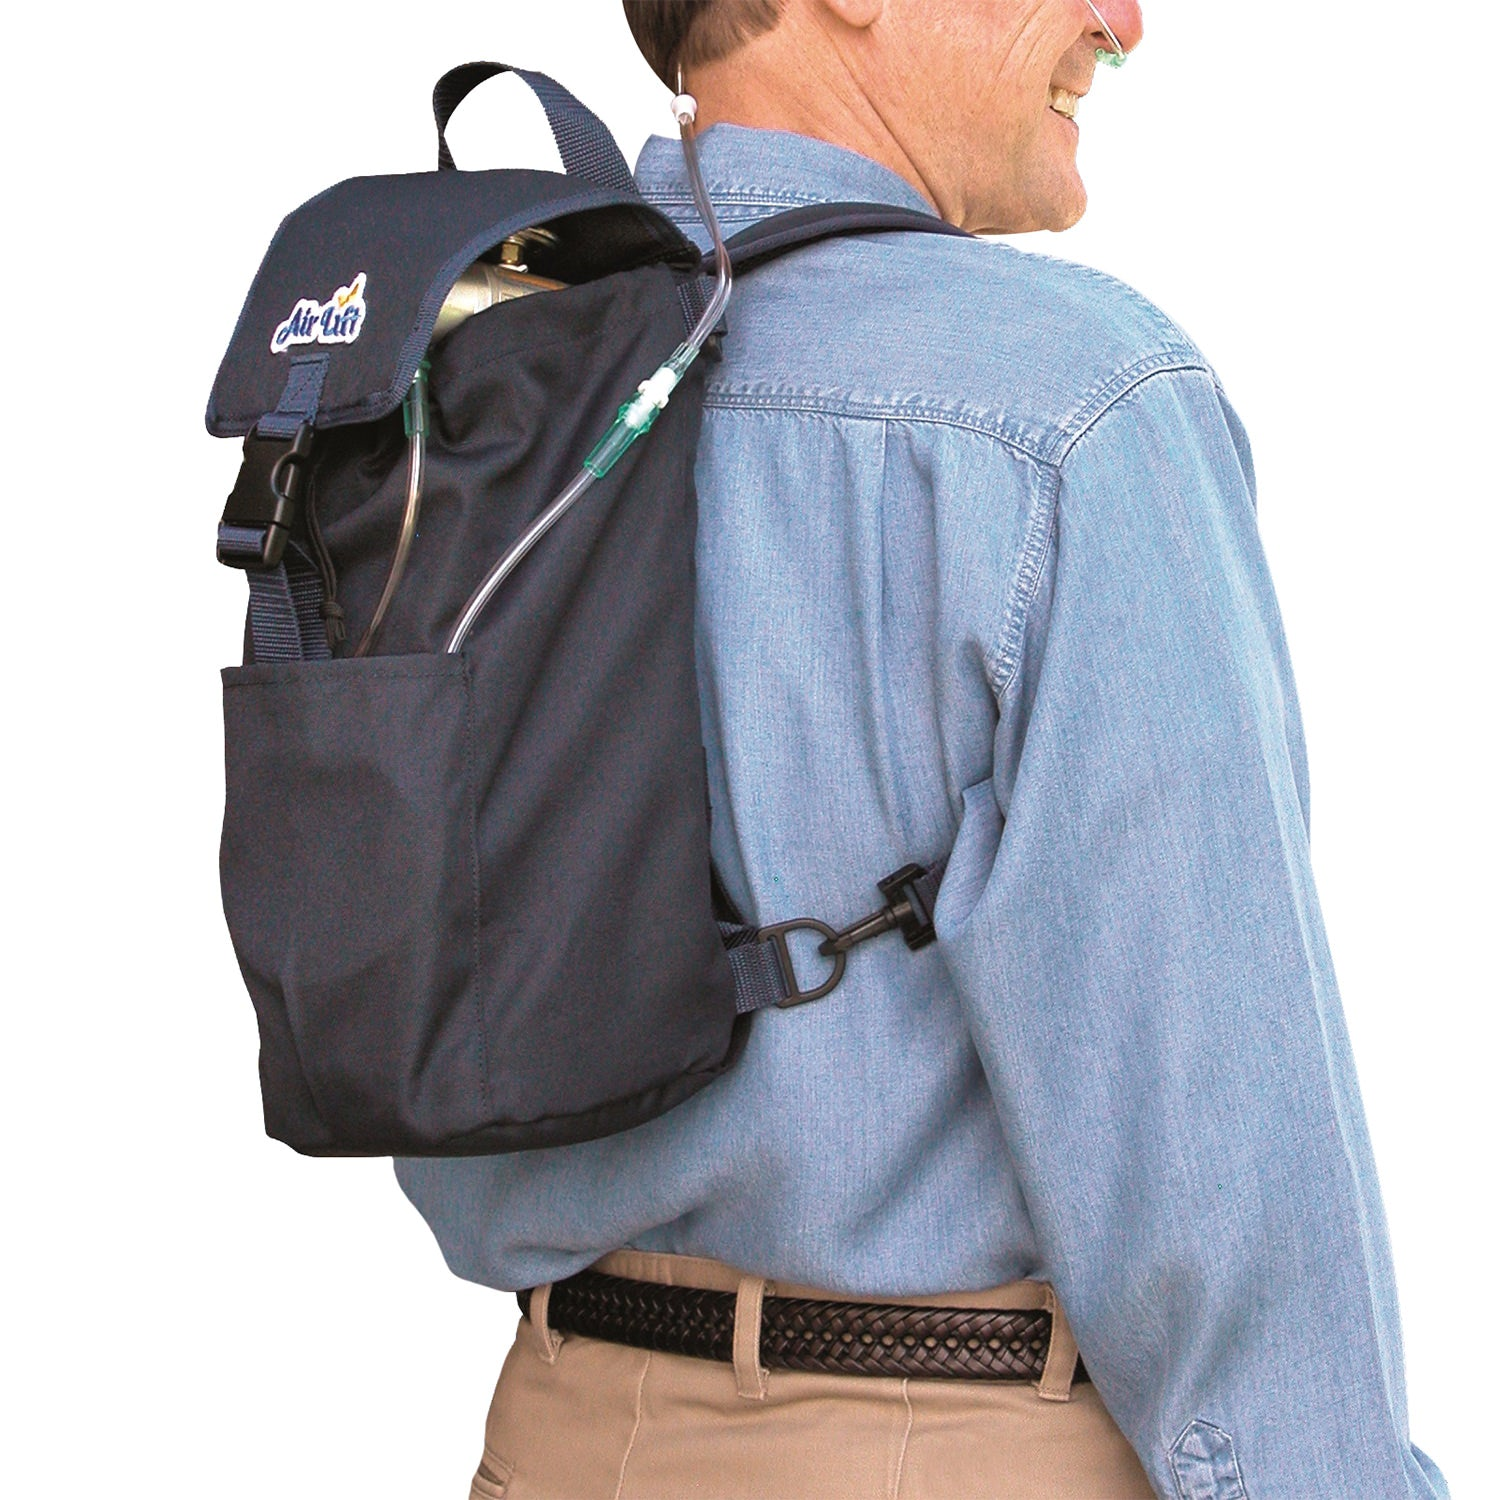 AirLift Backpack Oxygen Carrier